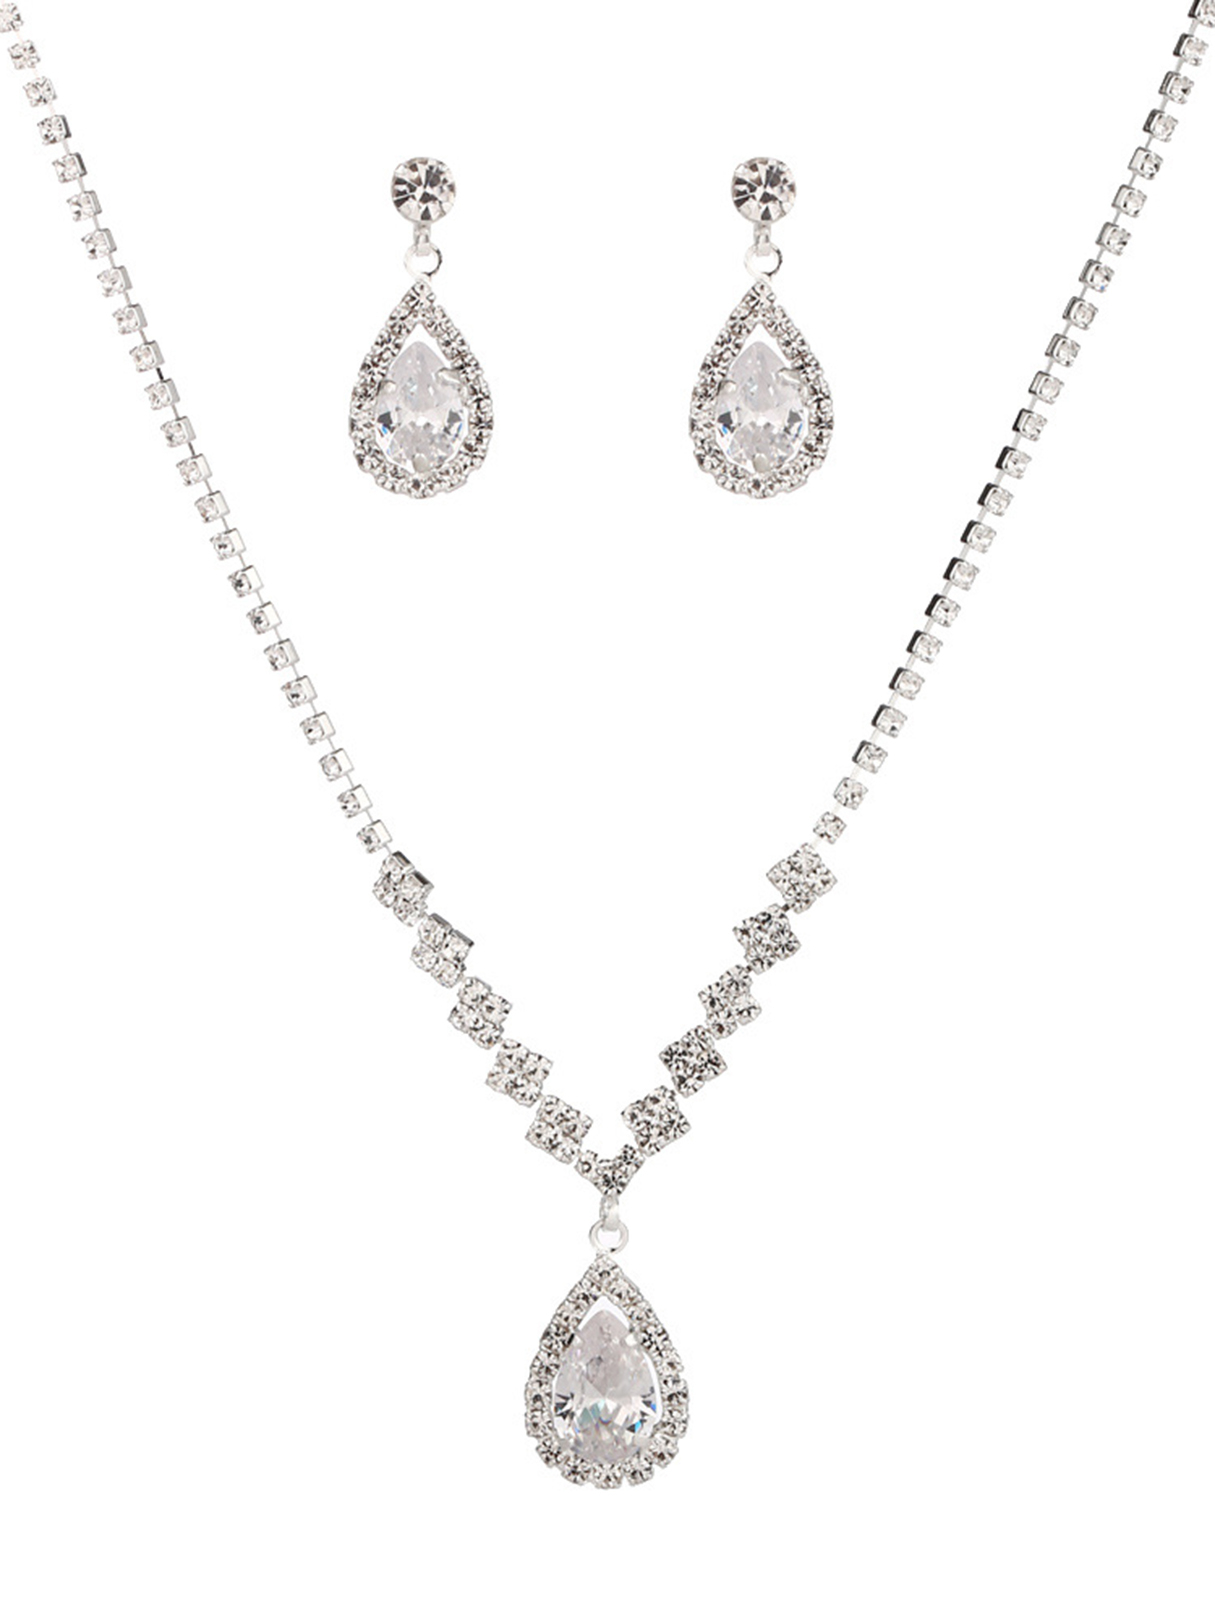 Silver Rhinestones Water Drop Pendant Necklace & Earrings Set